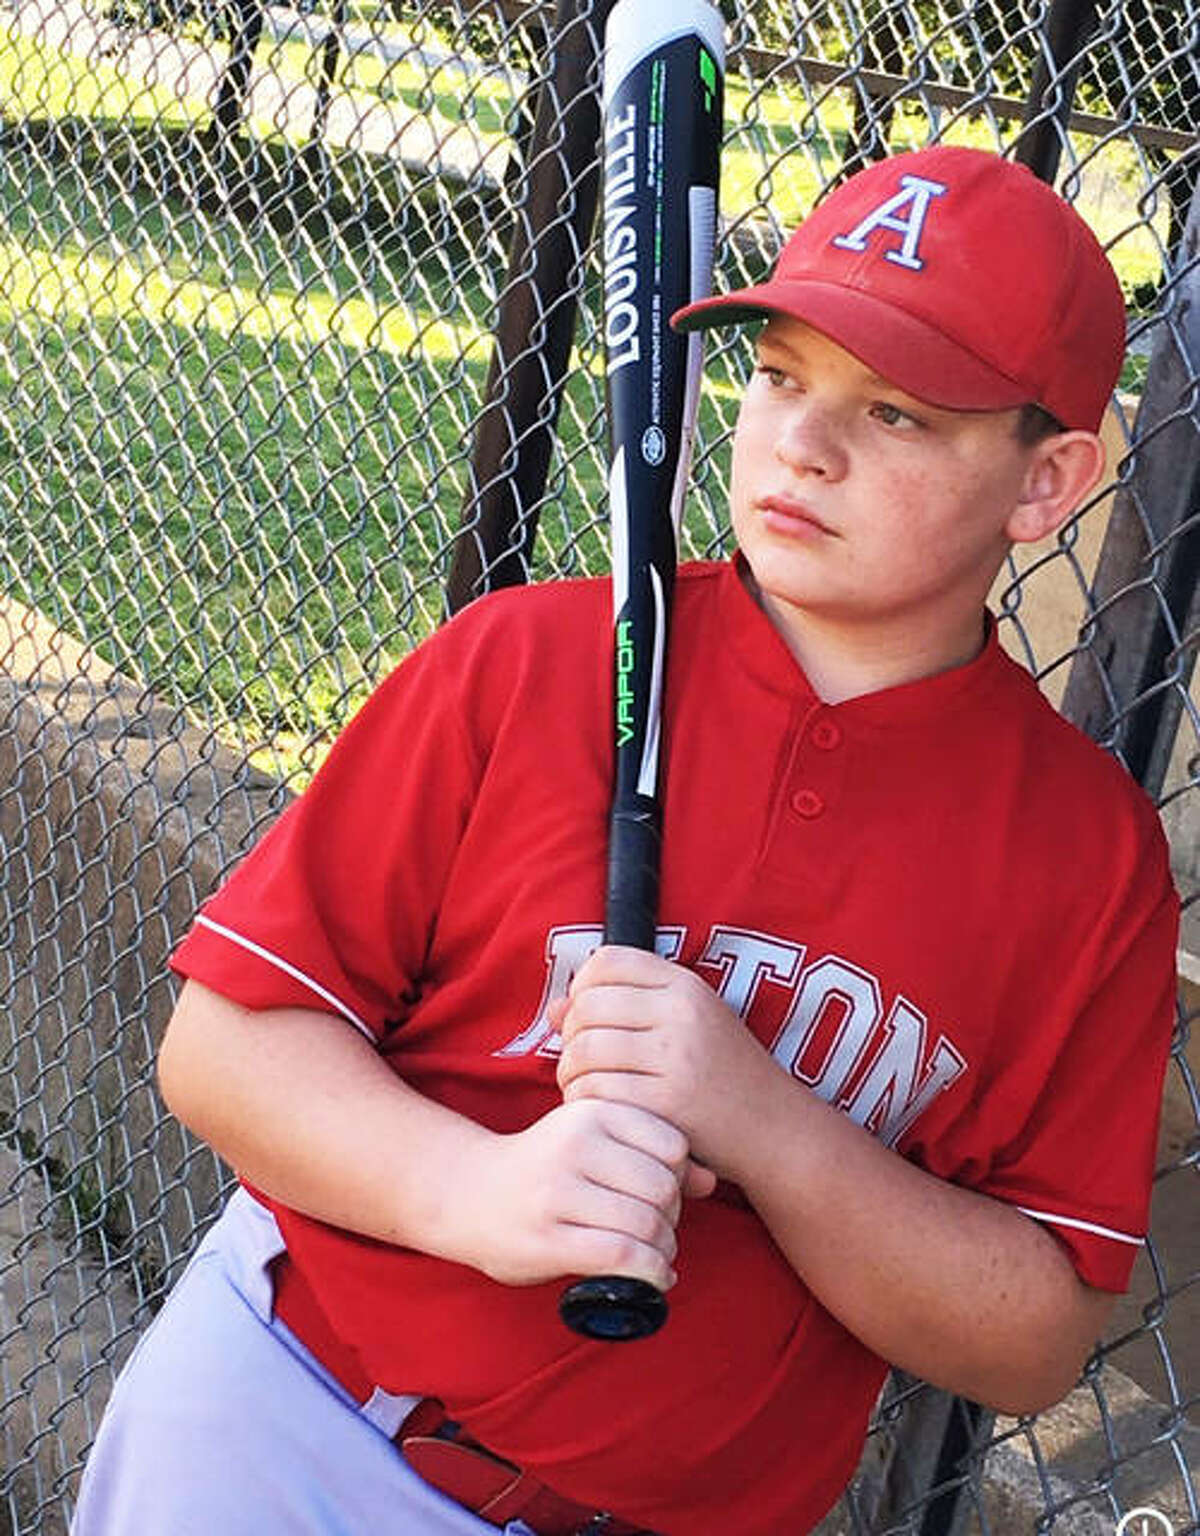 Eli Lawrence on the field as an Alton Redbird. Recognized as Alton Middle School's Optimist Student of the Month for September, Lawrence dreams of playing major league baseball someday and helping deaf athletes.